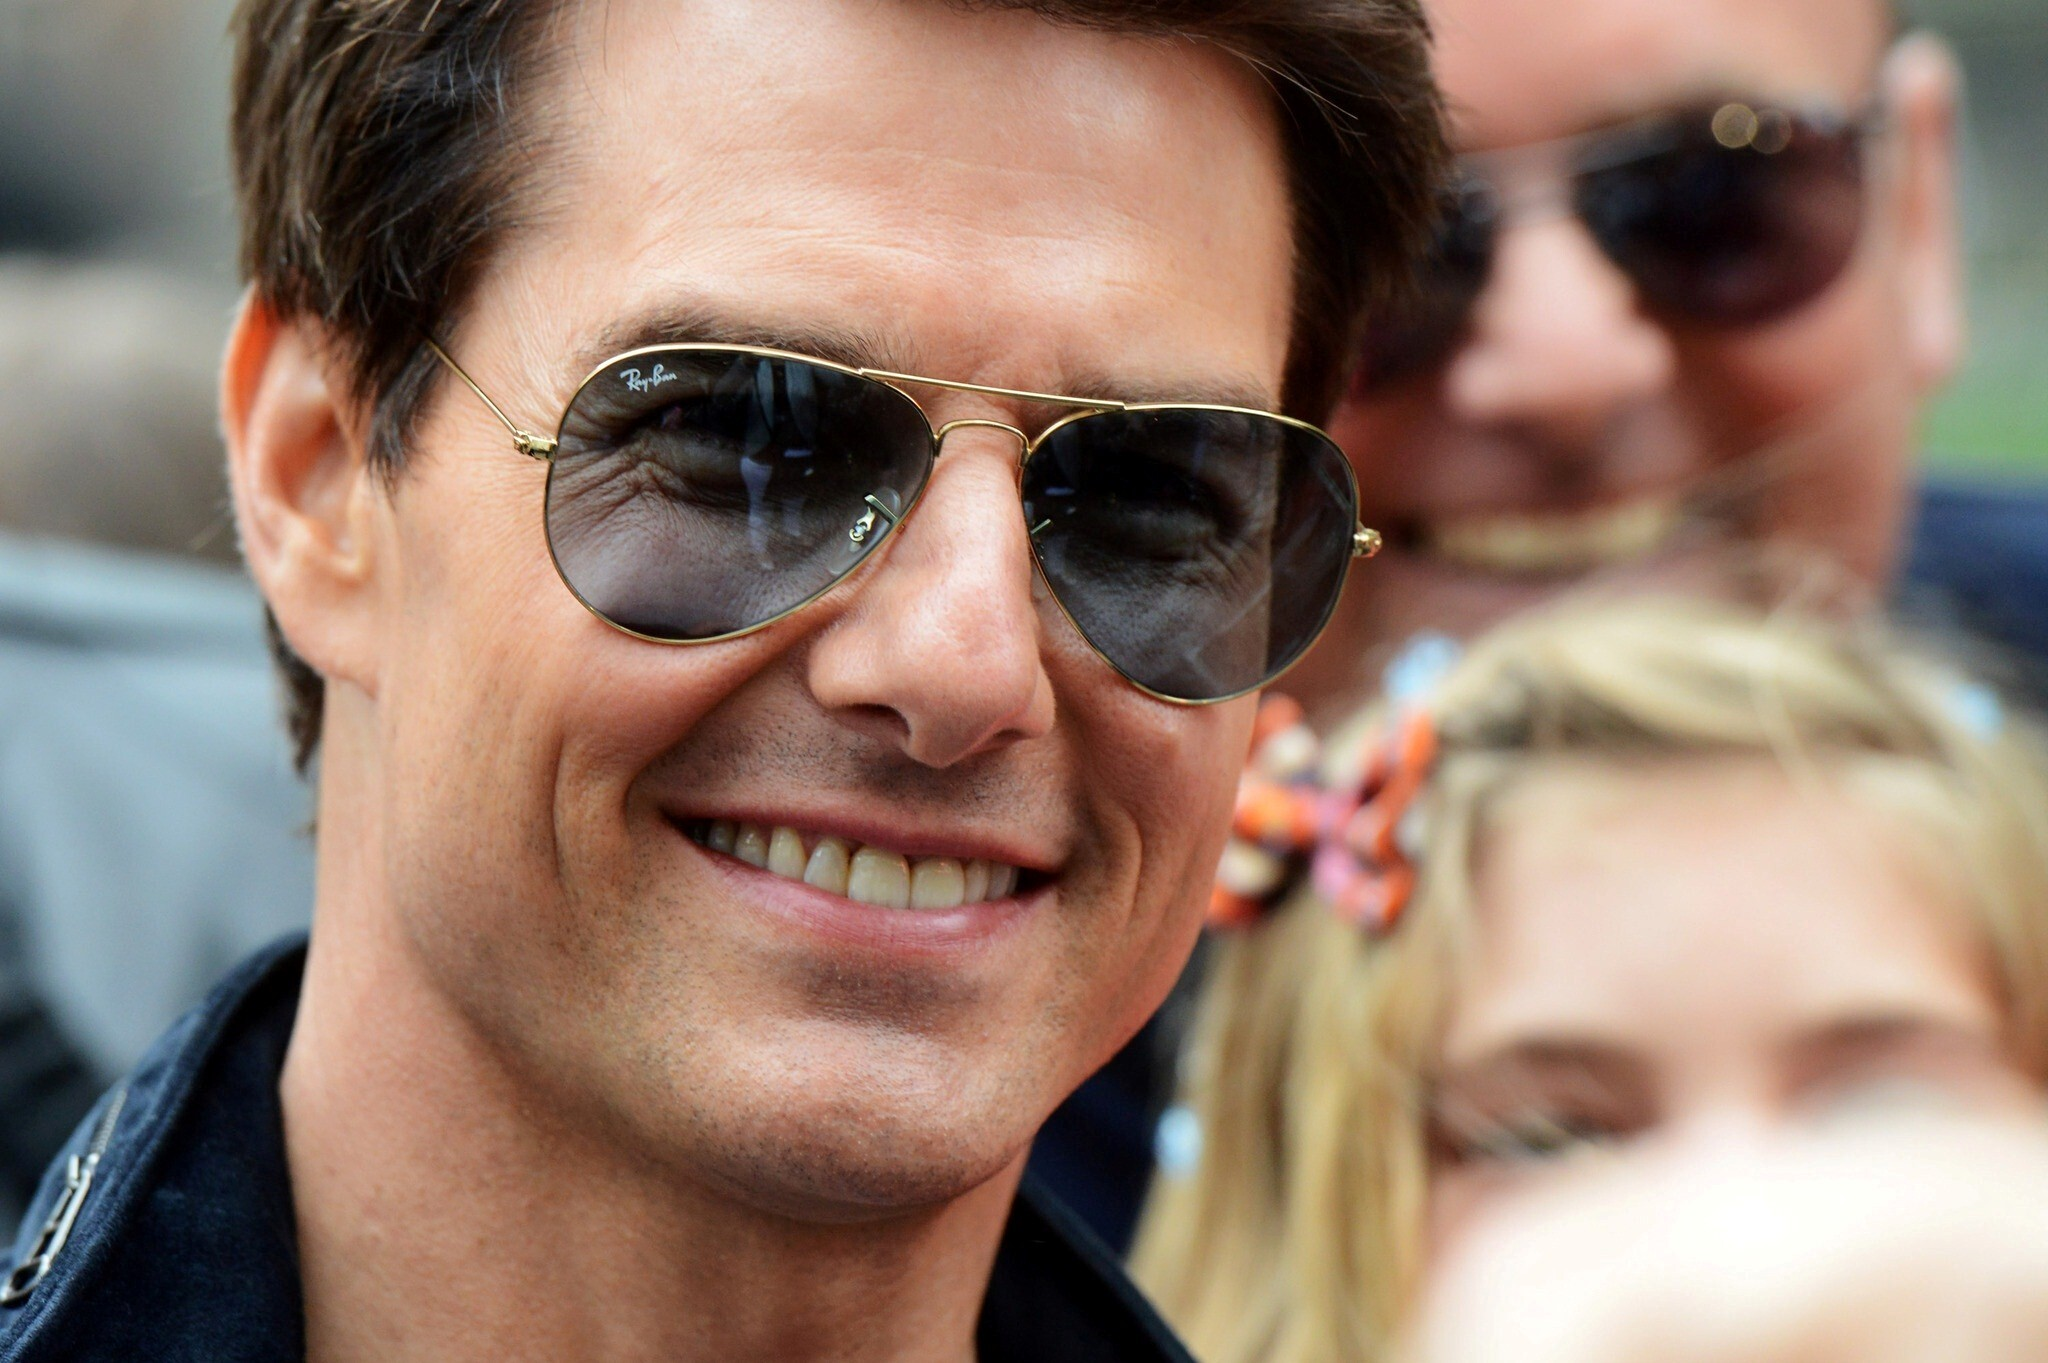 smiling face of tom cruise hollywood actor | hd wallpapers